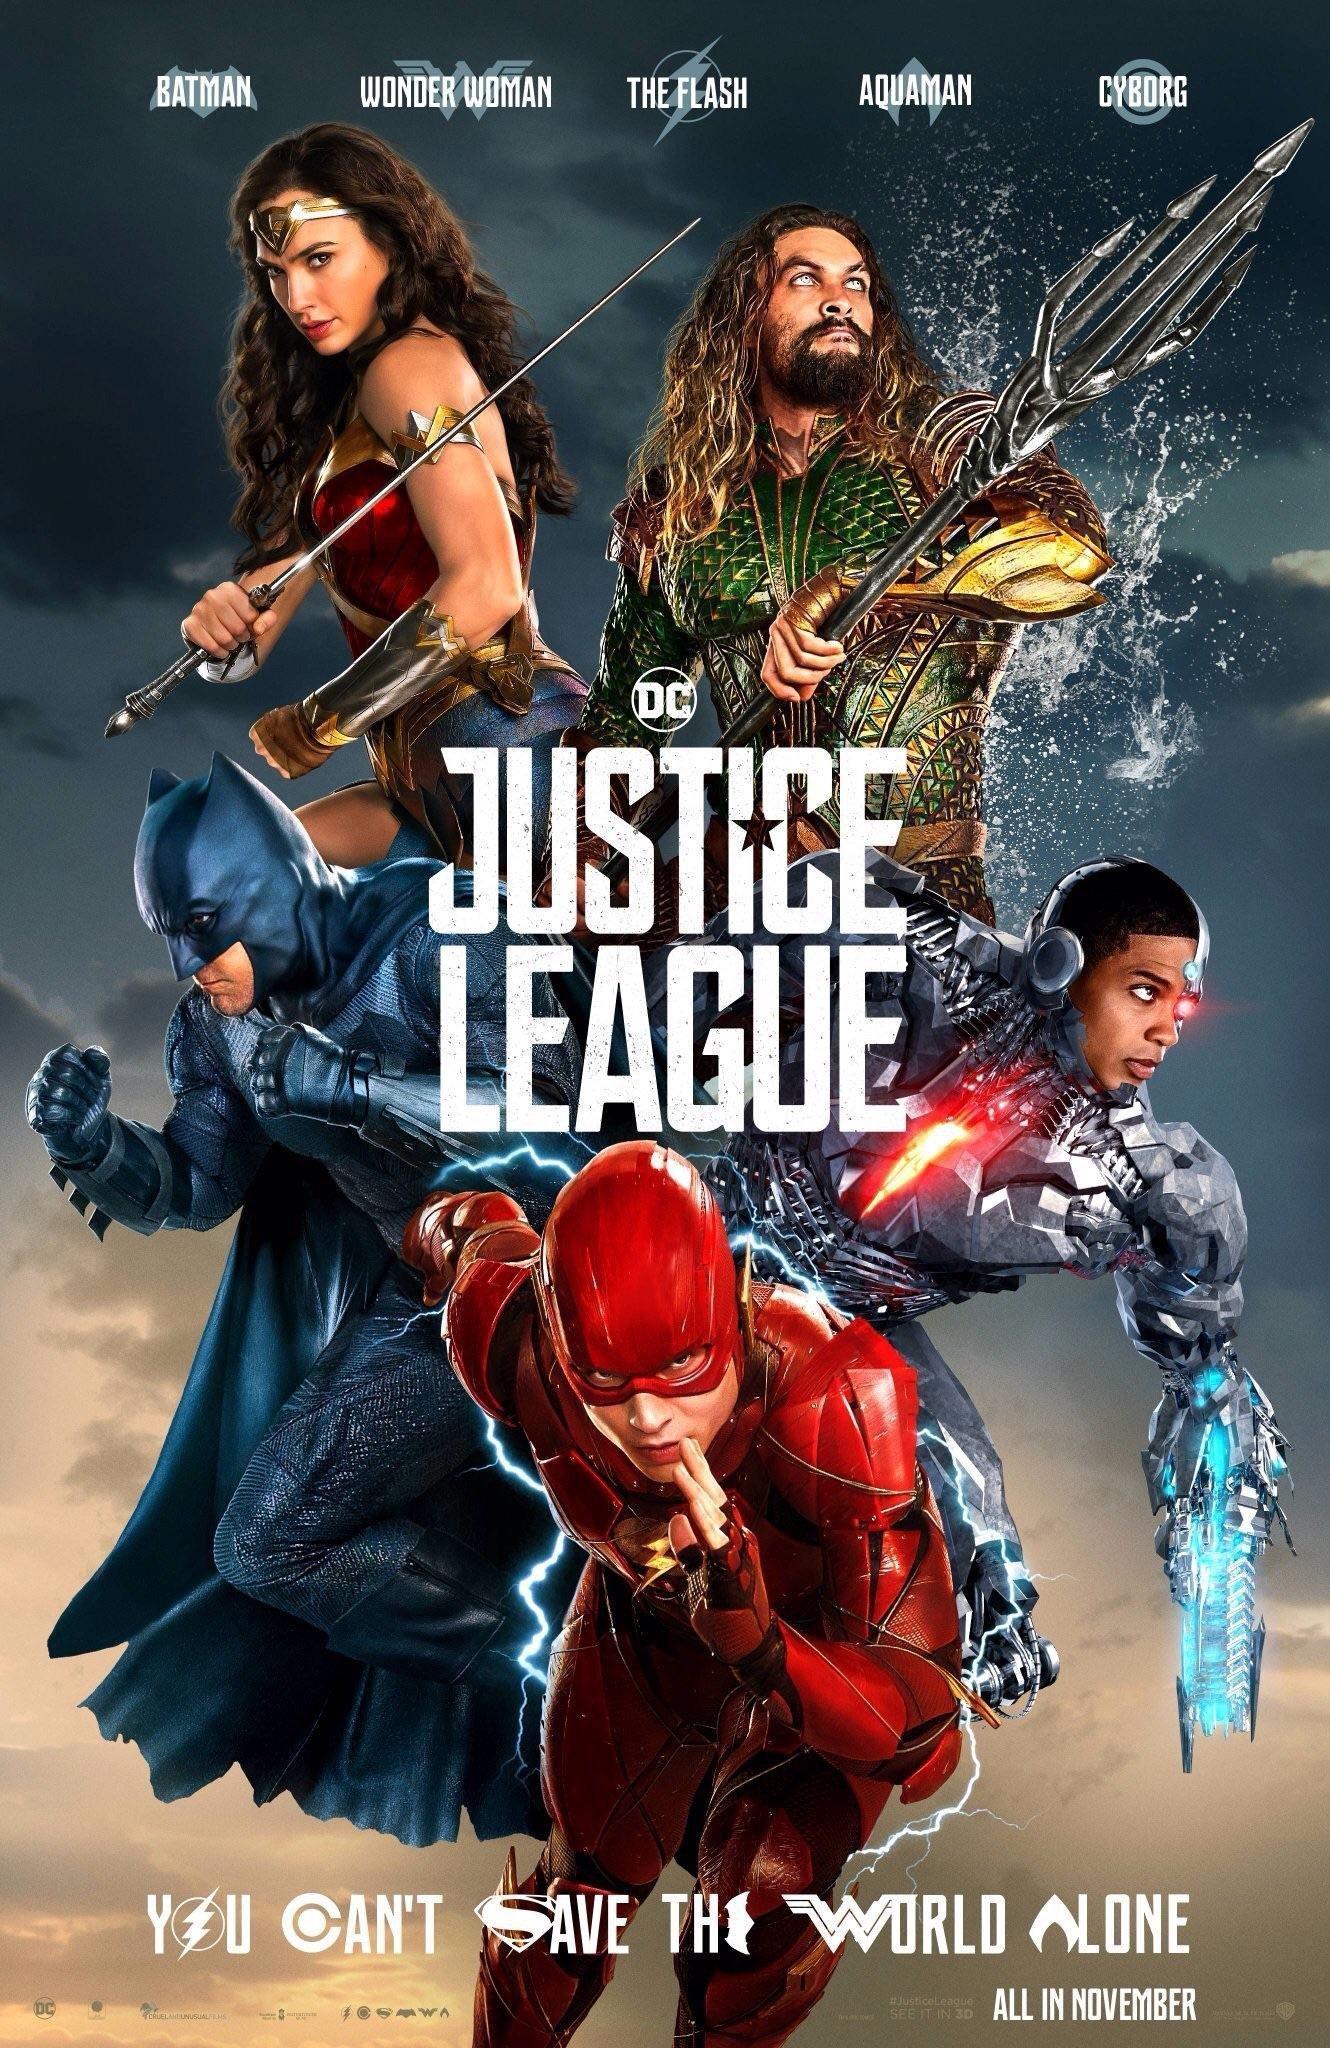 Poster of Justice League in 3D